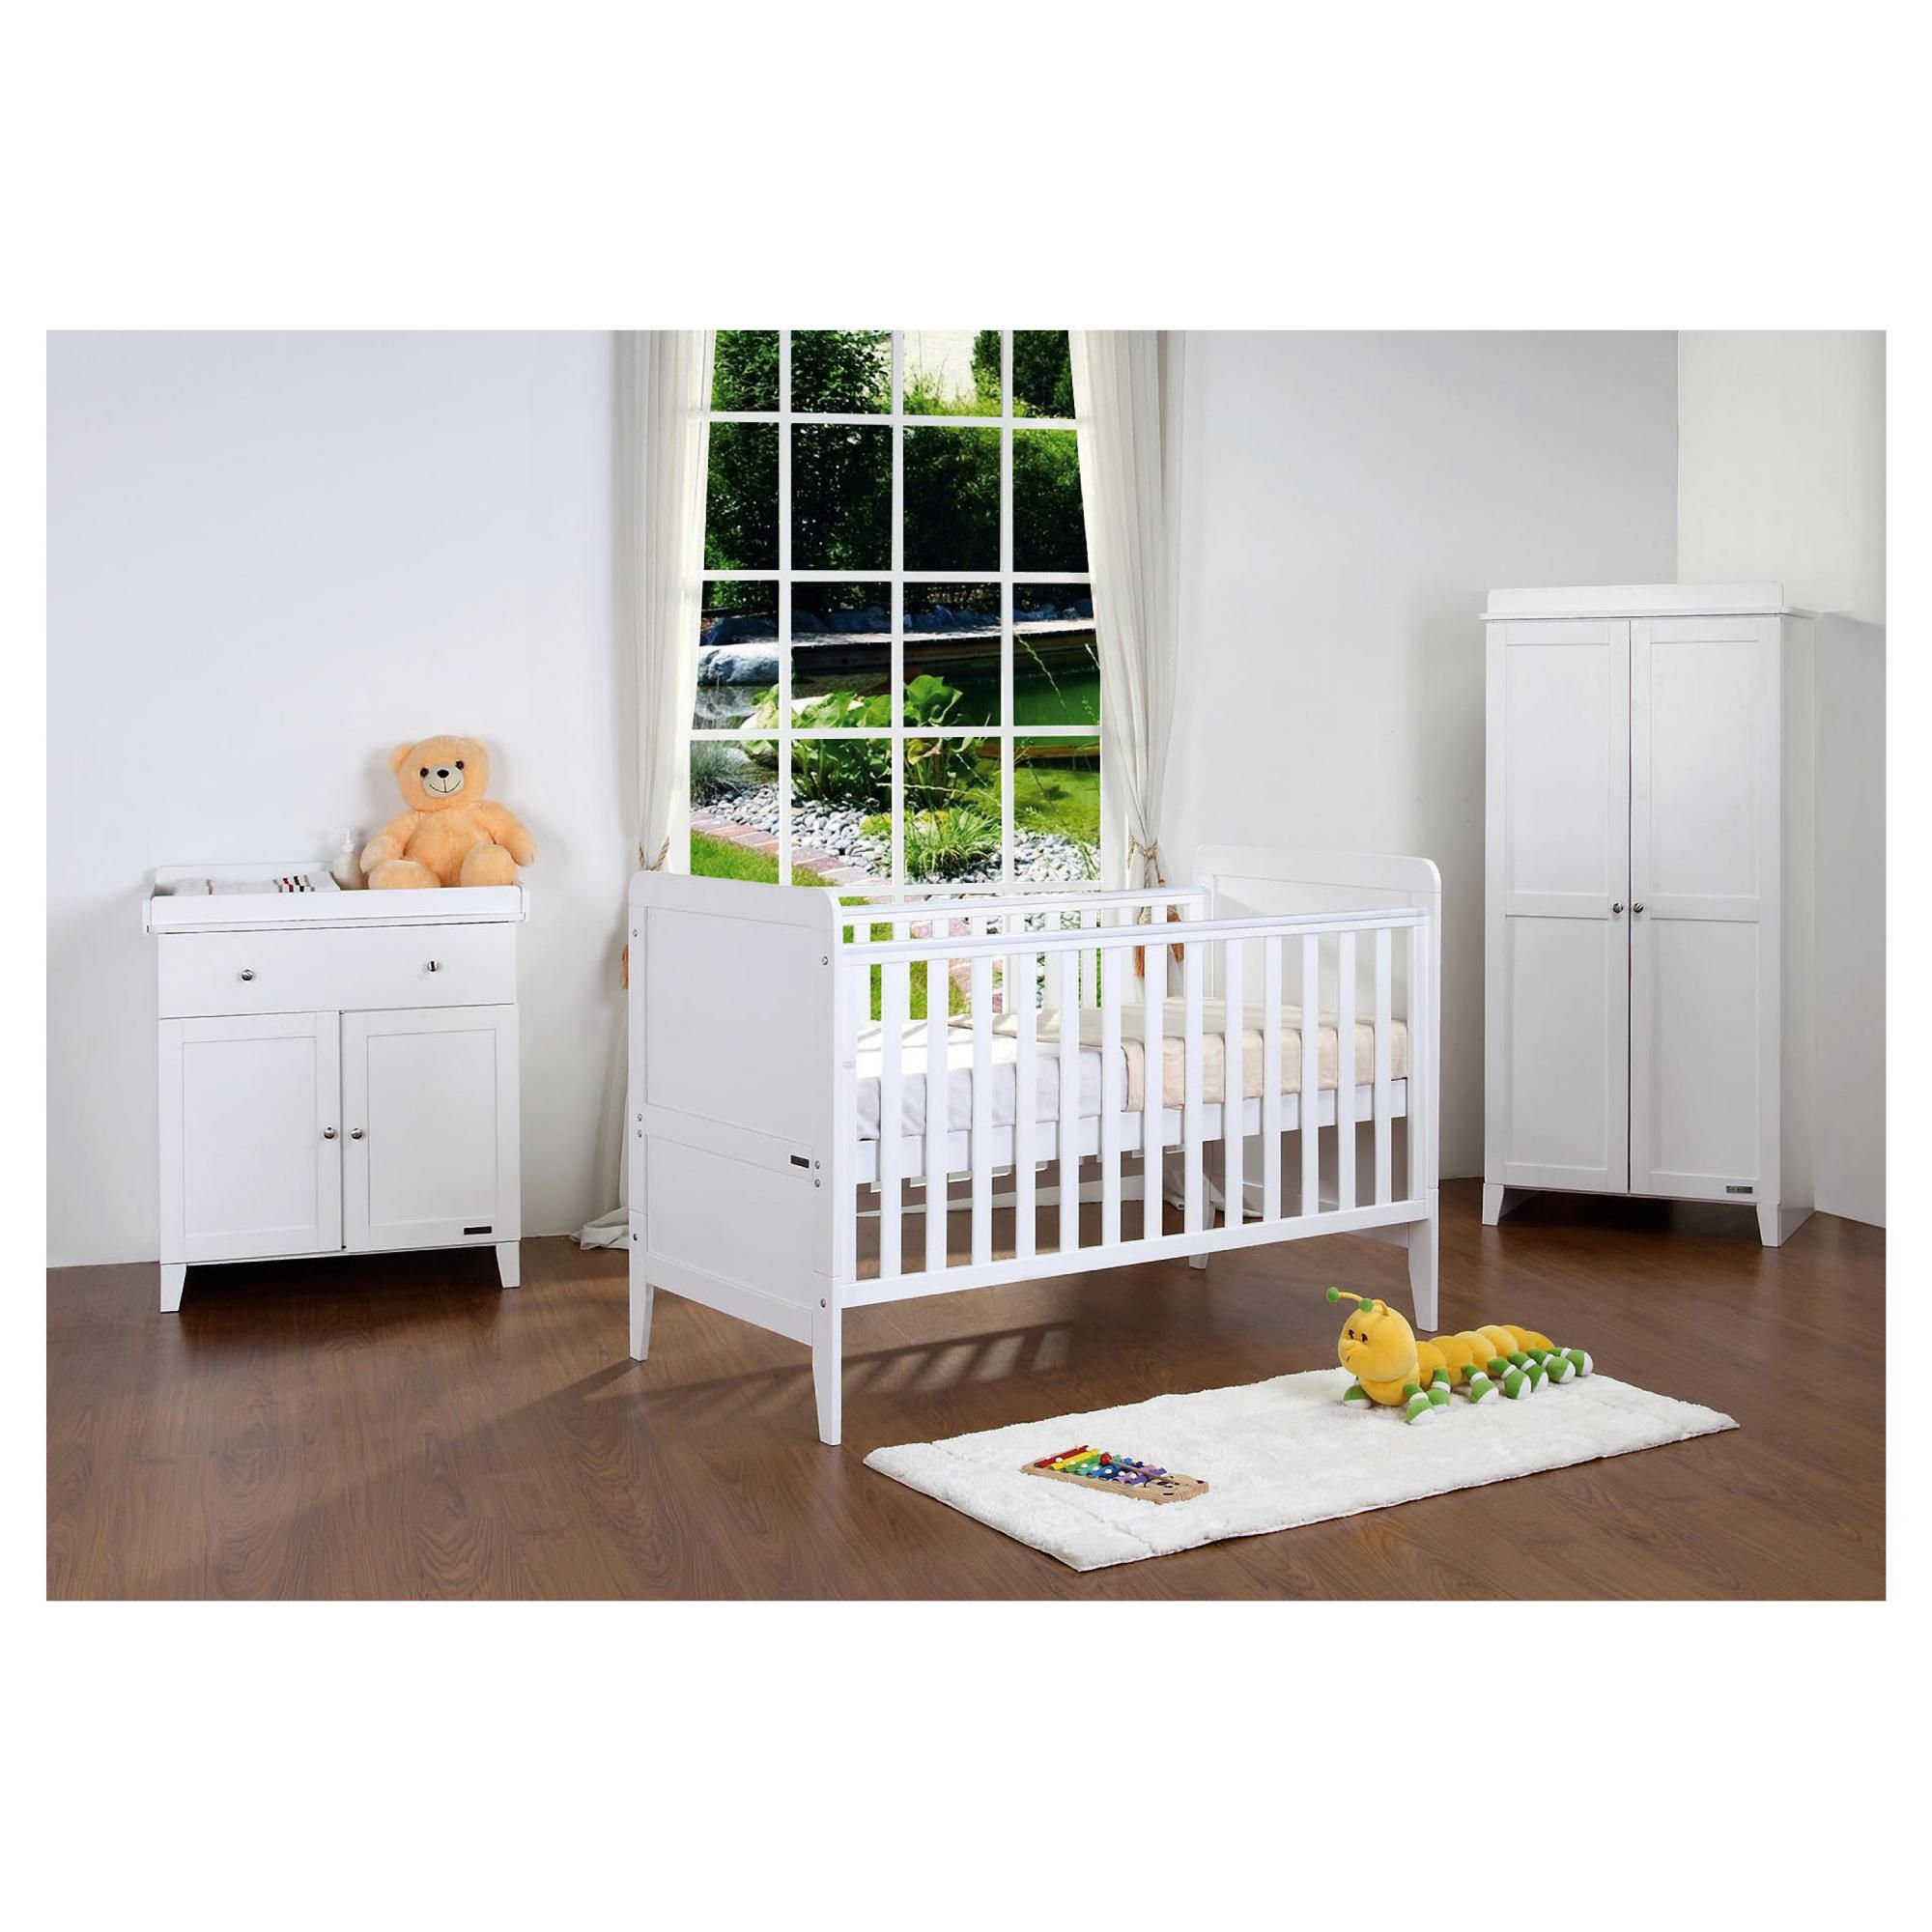 Tutti Bambini Rio 3 Piece Room Set, White with FREE Home Assembly at Tesco Direct